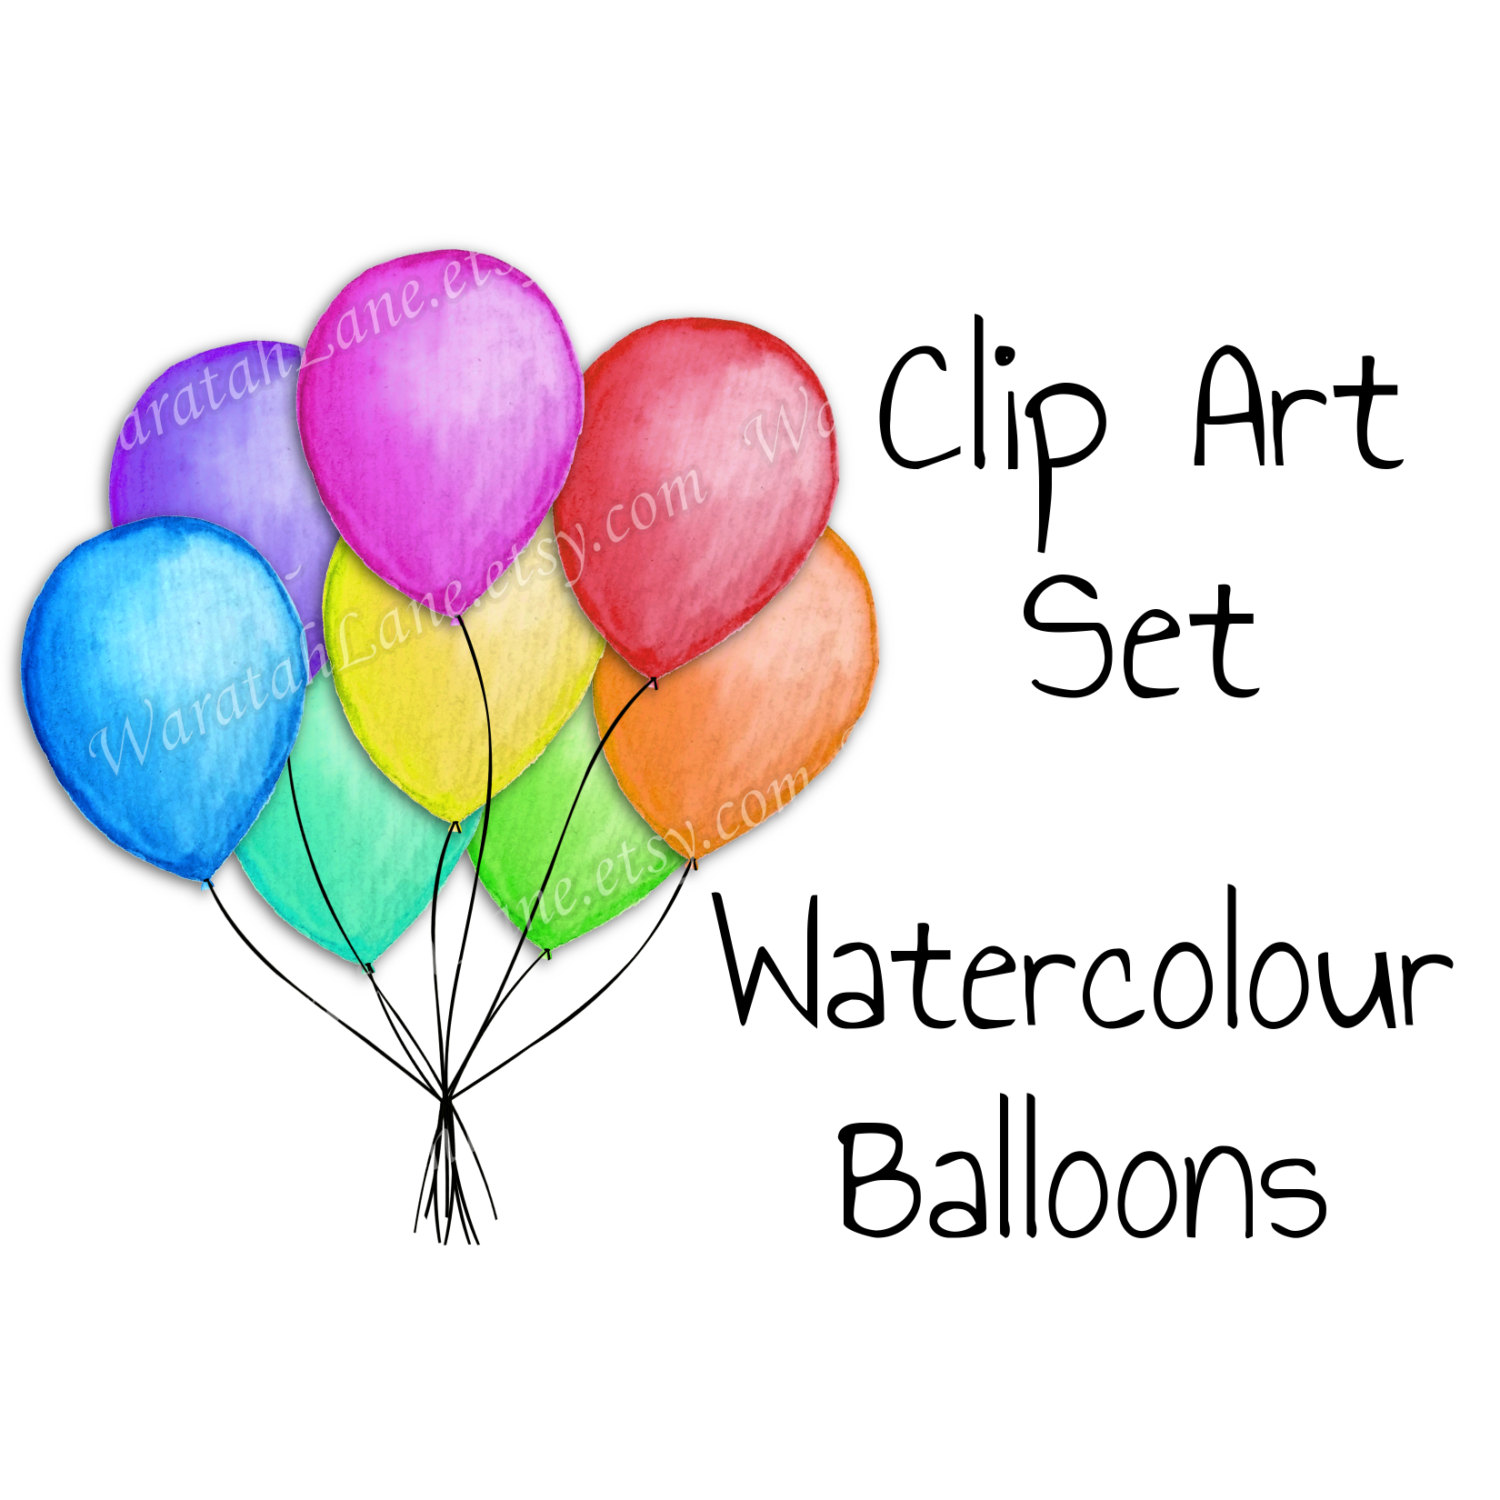 1500x1500 Balloons Clip Art Watercolor Clipart Set Birthday Clip Art party